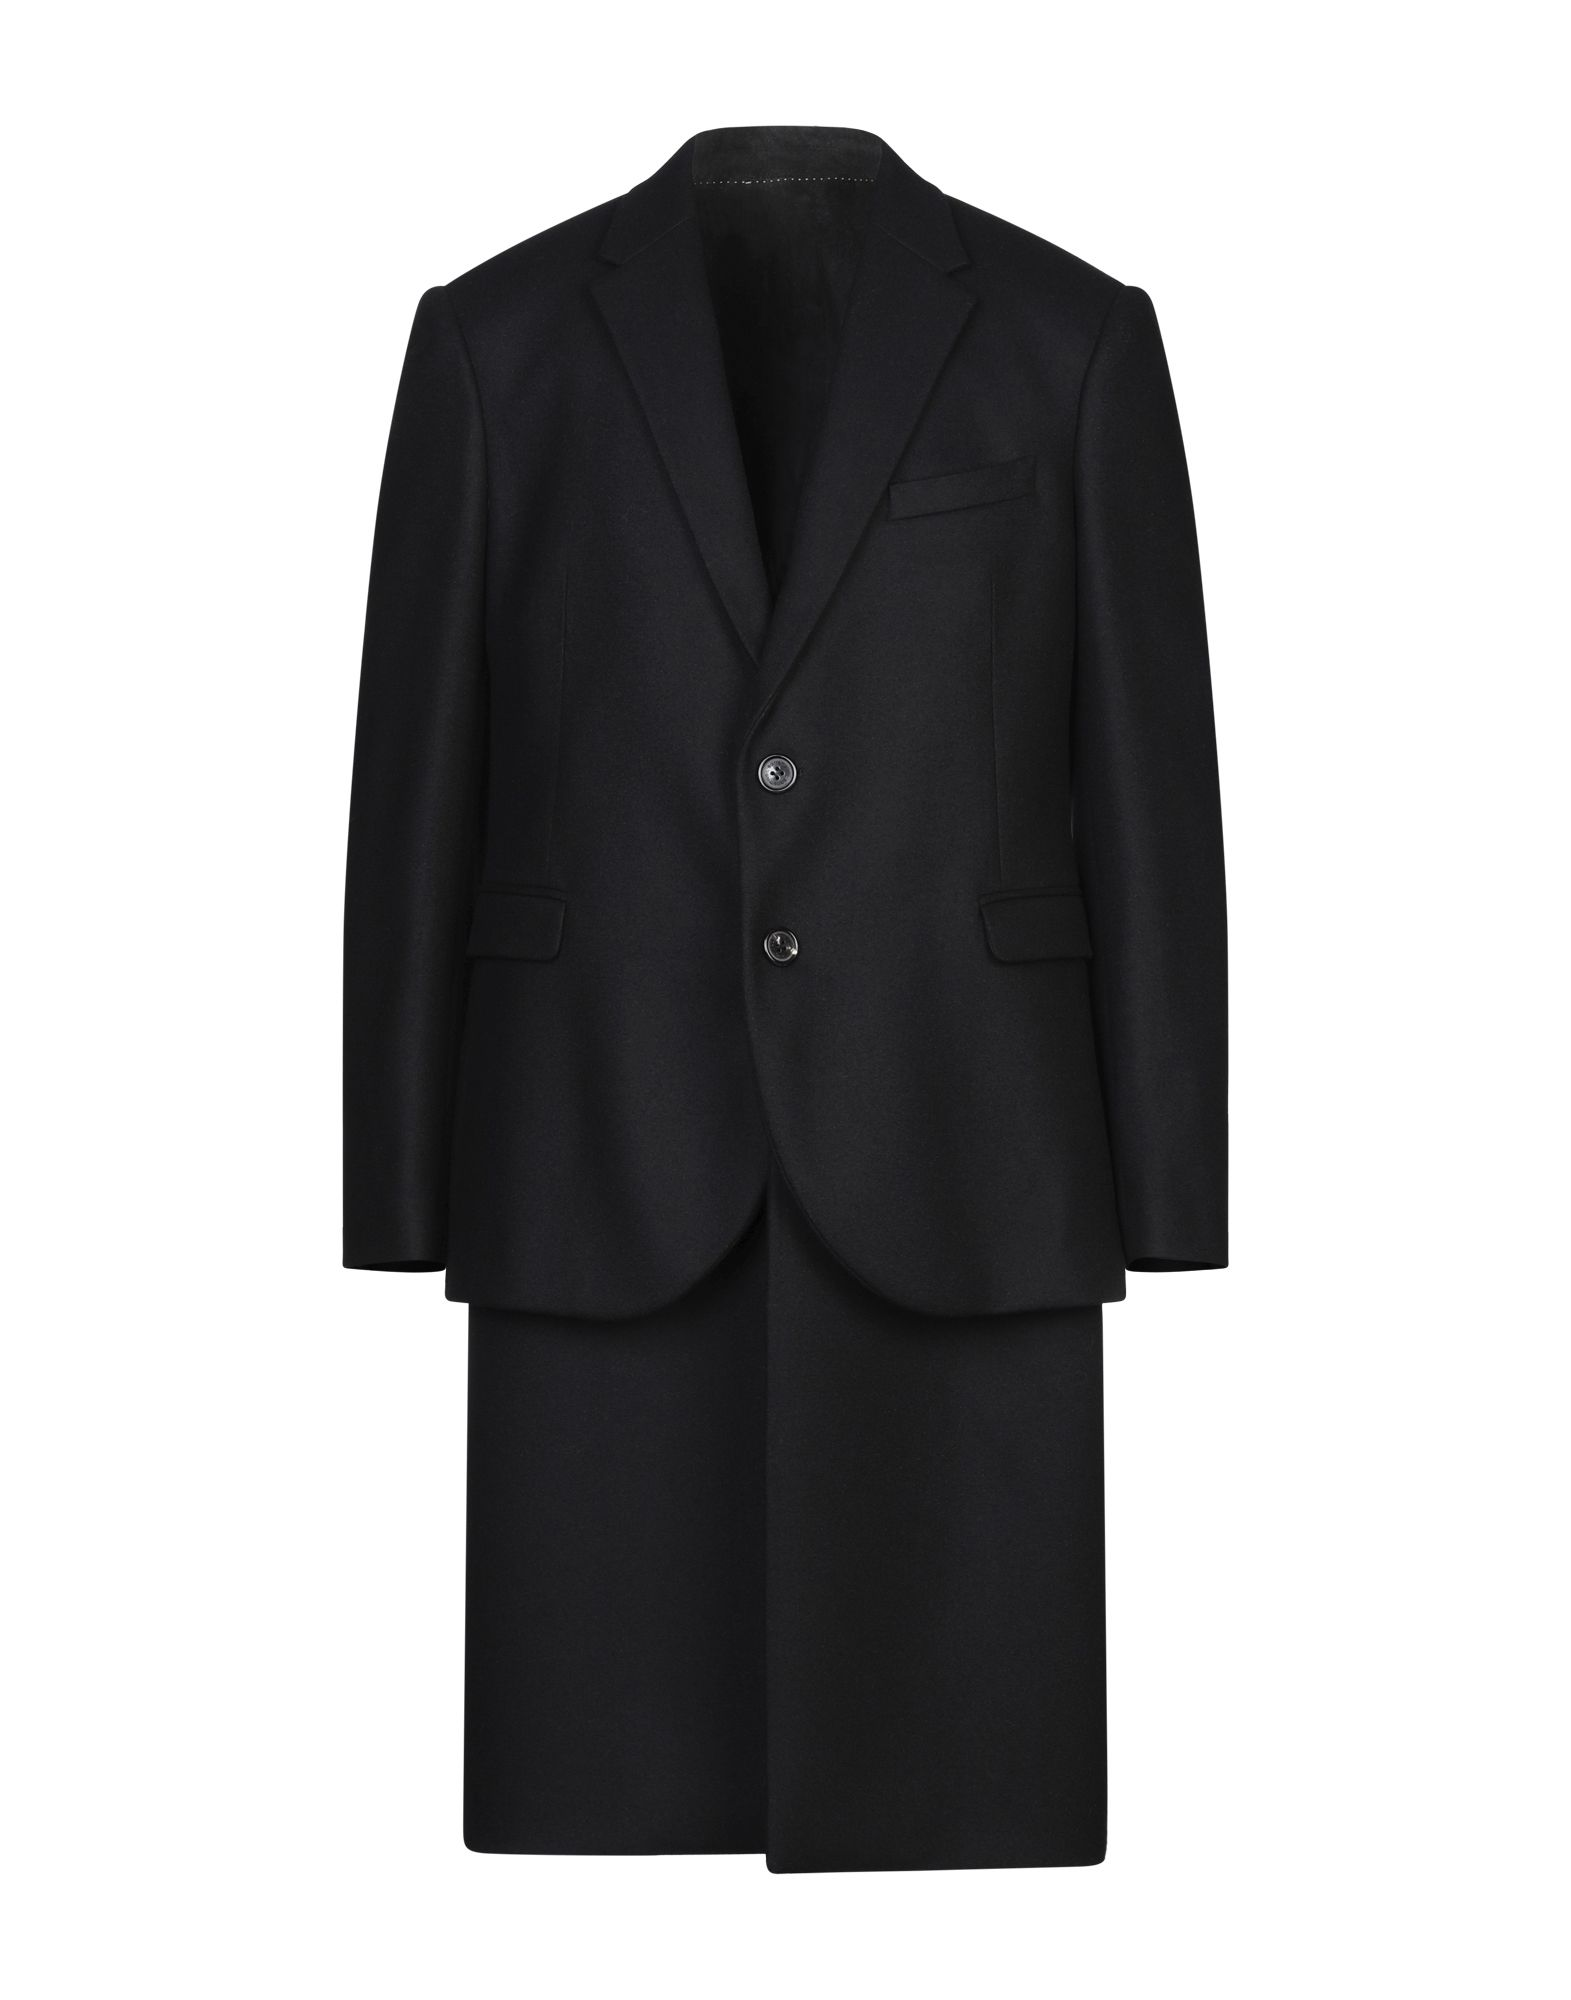 NEIL BARRETT Coats. baize, no appliqués, basic solid color, single-breasted, button closing, lapel collar, multipockets, long sleeves, fully lined, large sized. 80% Virgin Wool, 20% Polyamide